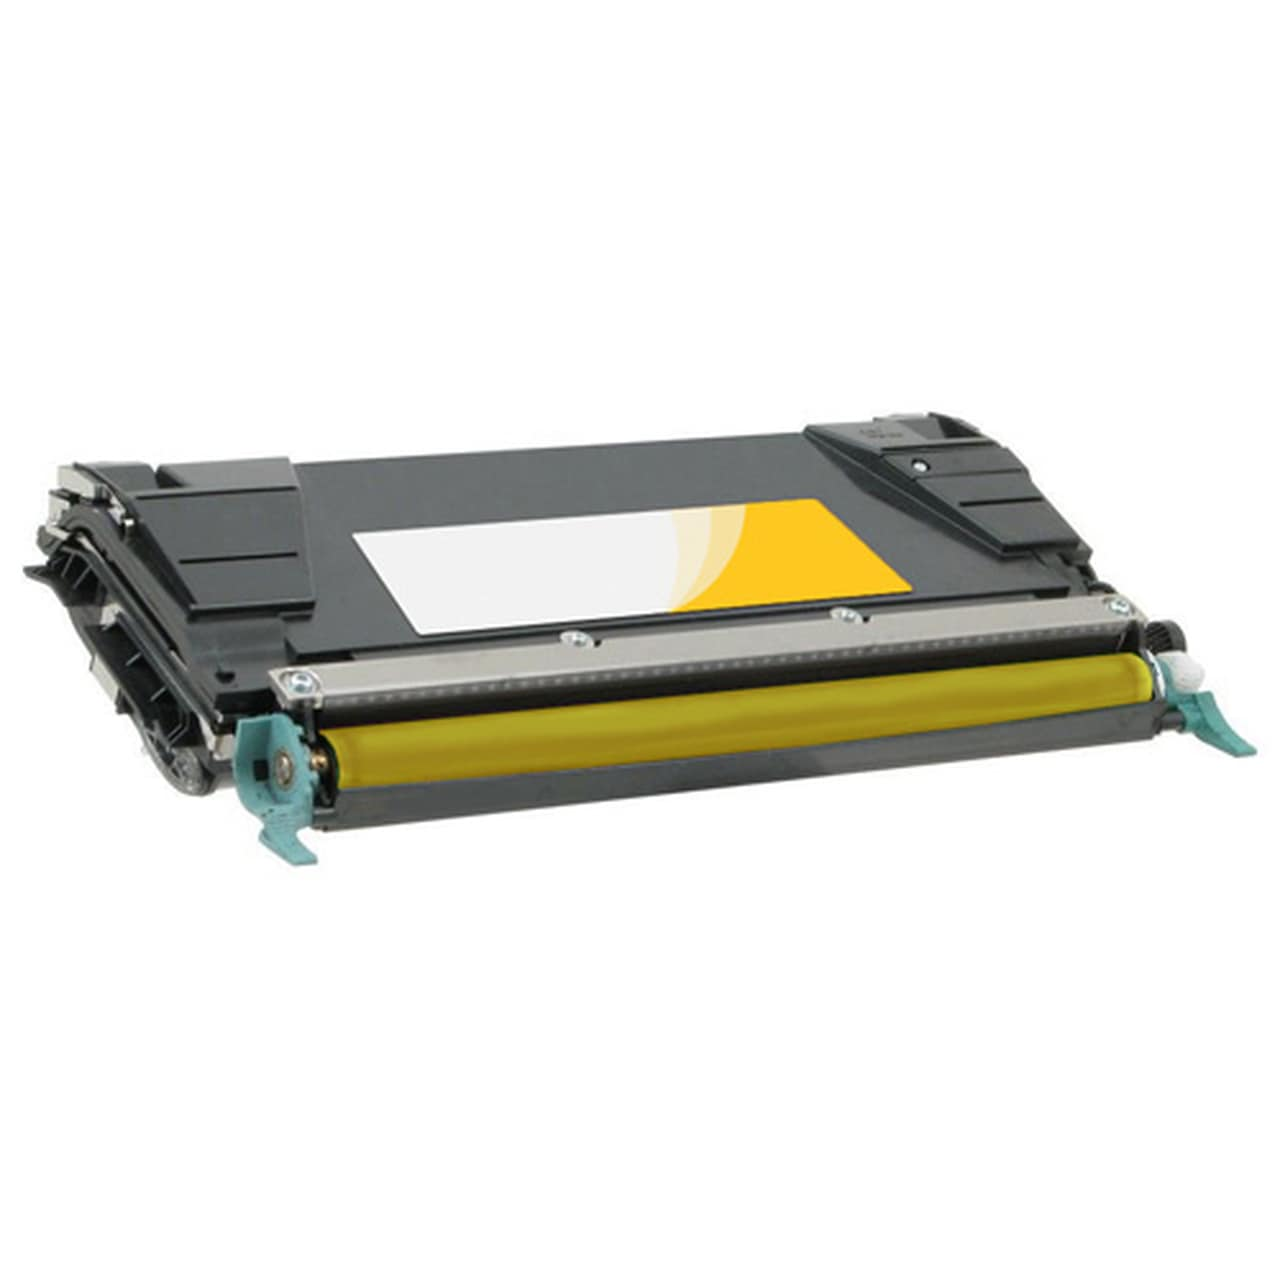 C5220YS Toner Cartridge - Lexmark Remanufactured (Yellow)